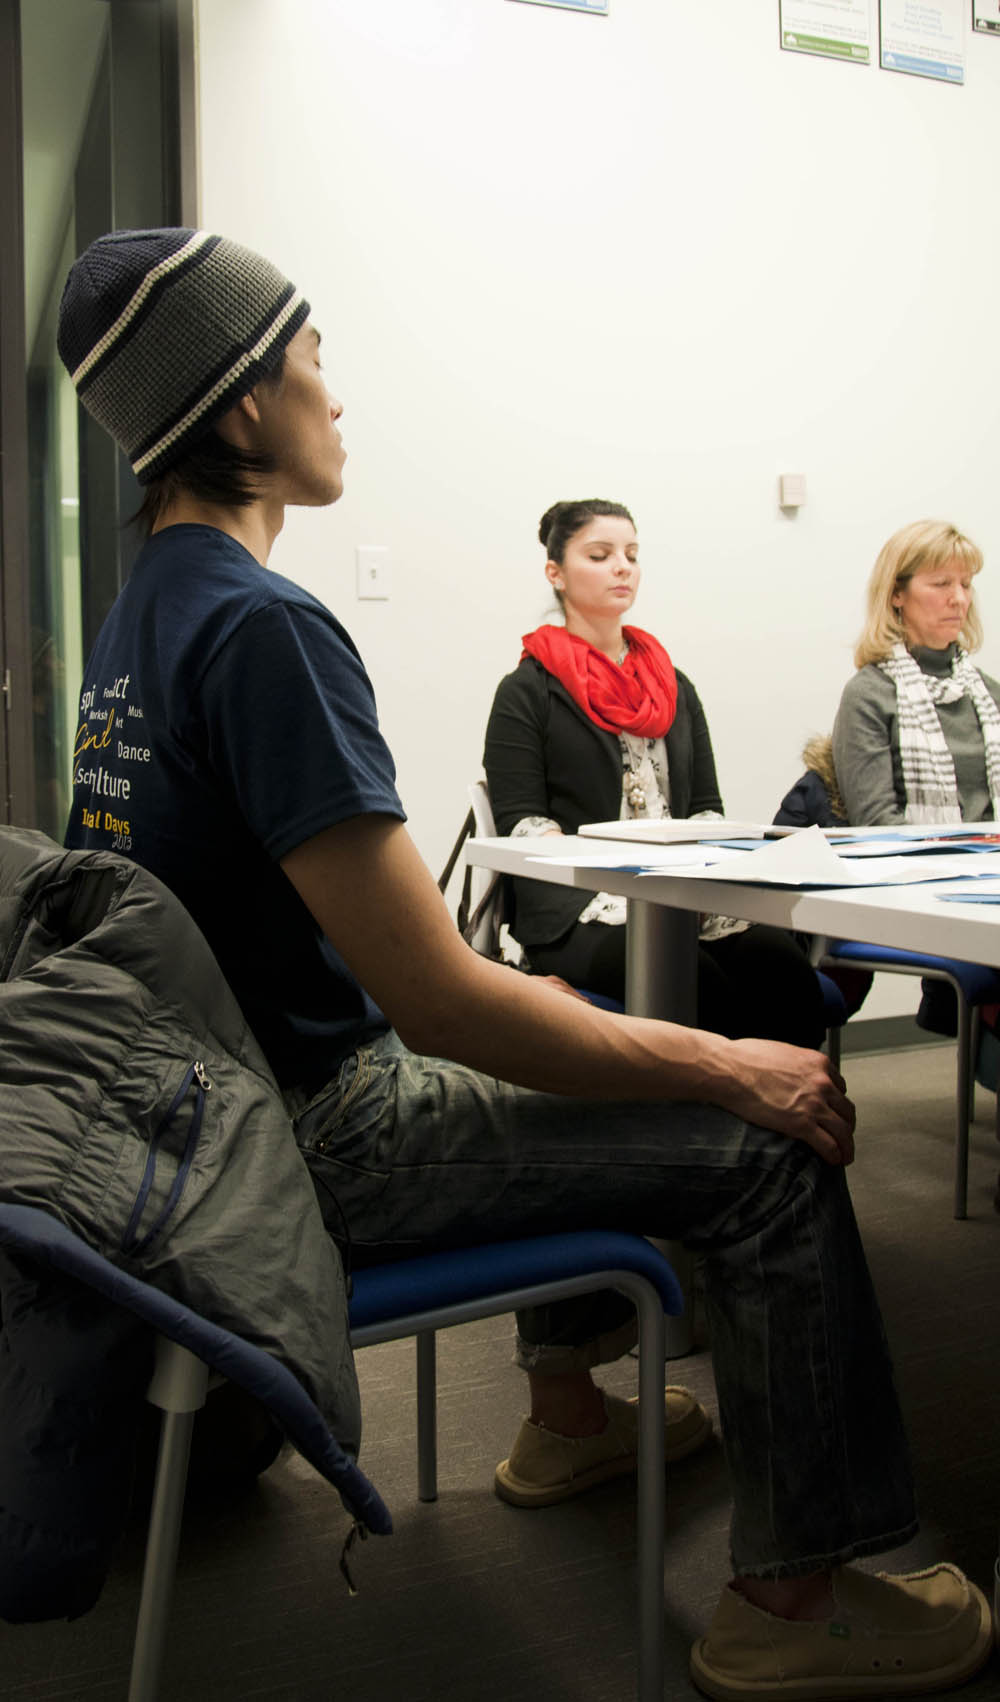 Kai Liang, adventure tourism student finds peace during a meditation exercise at the Tree of Life Cognitive Behavioural Therapy Workshop on Feb. 12. - Photo by Courtney Dickson